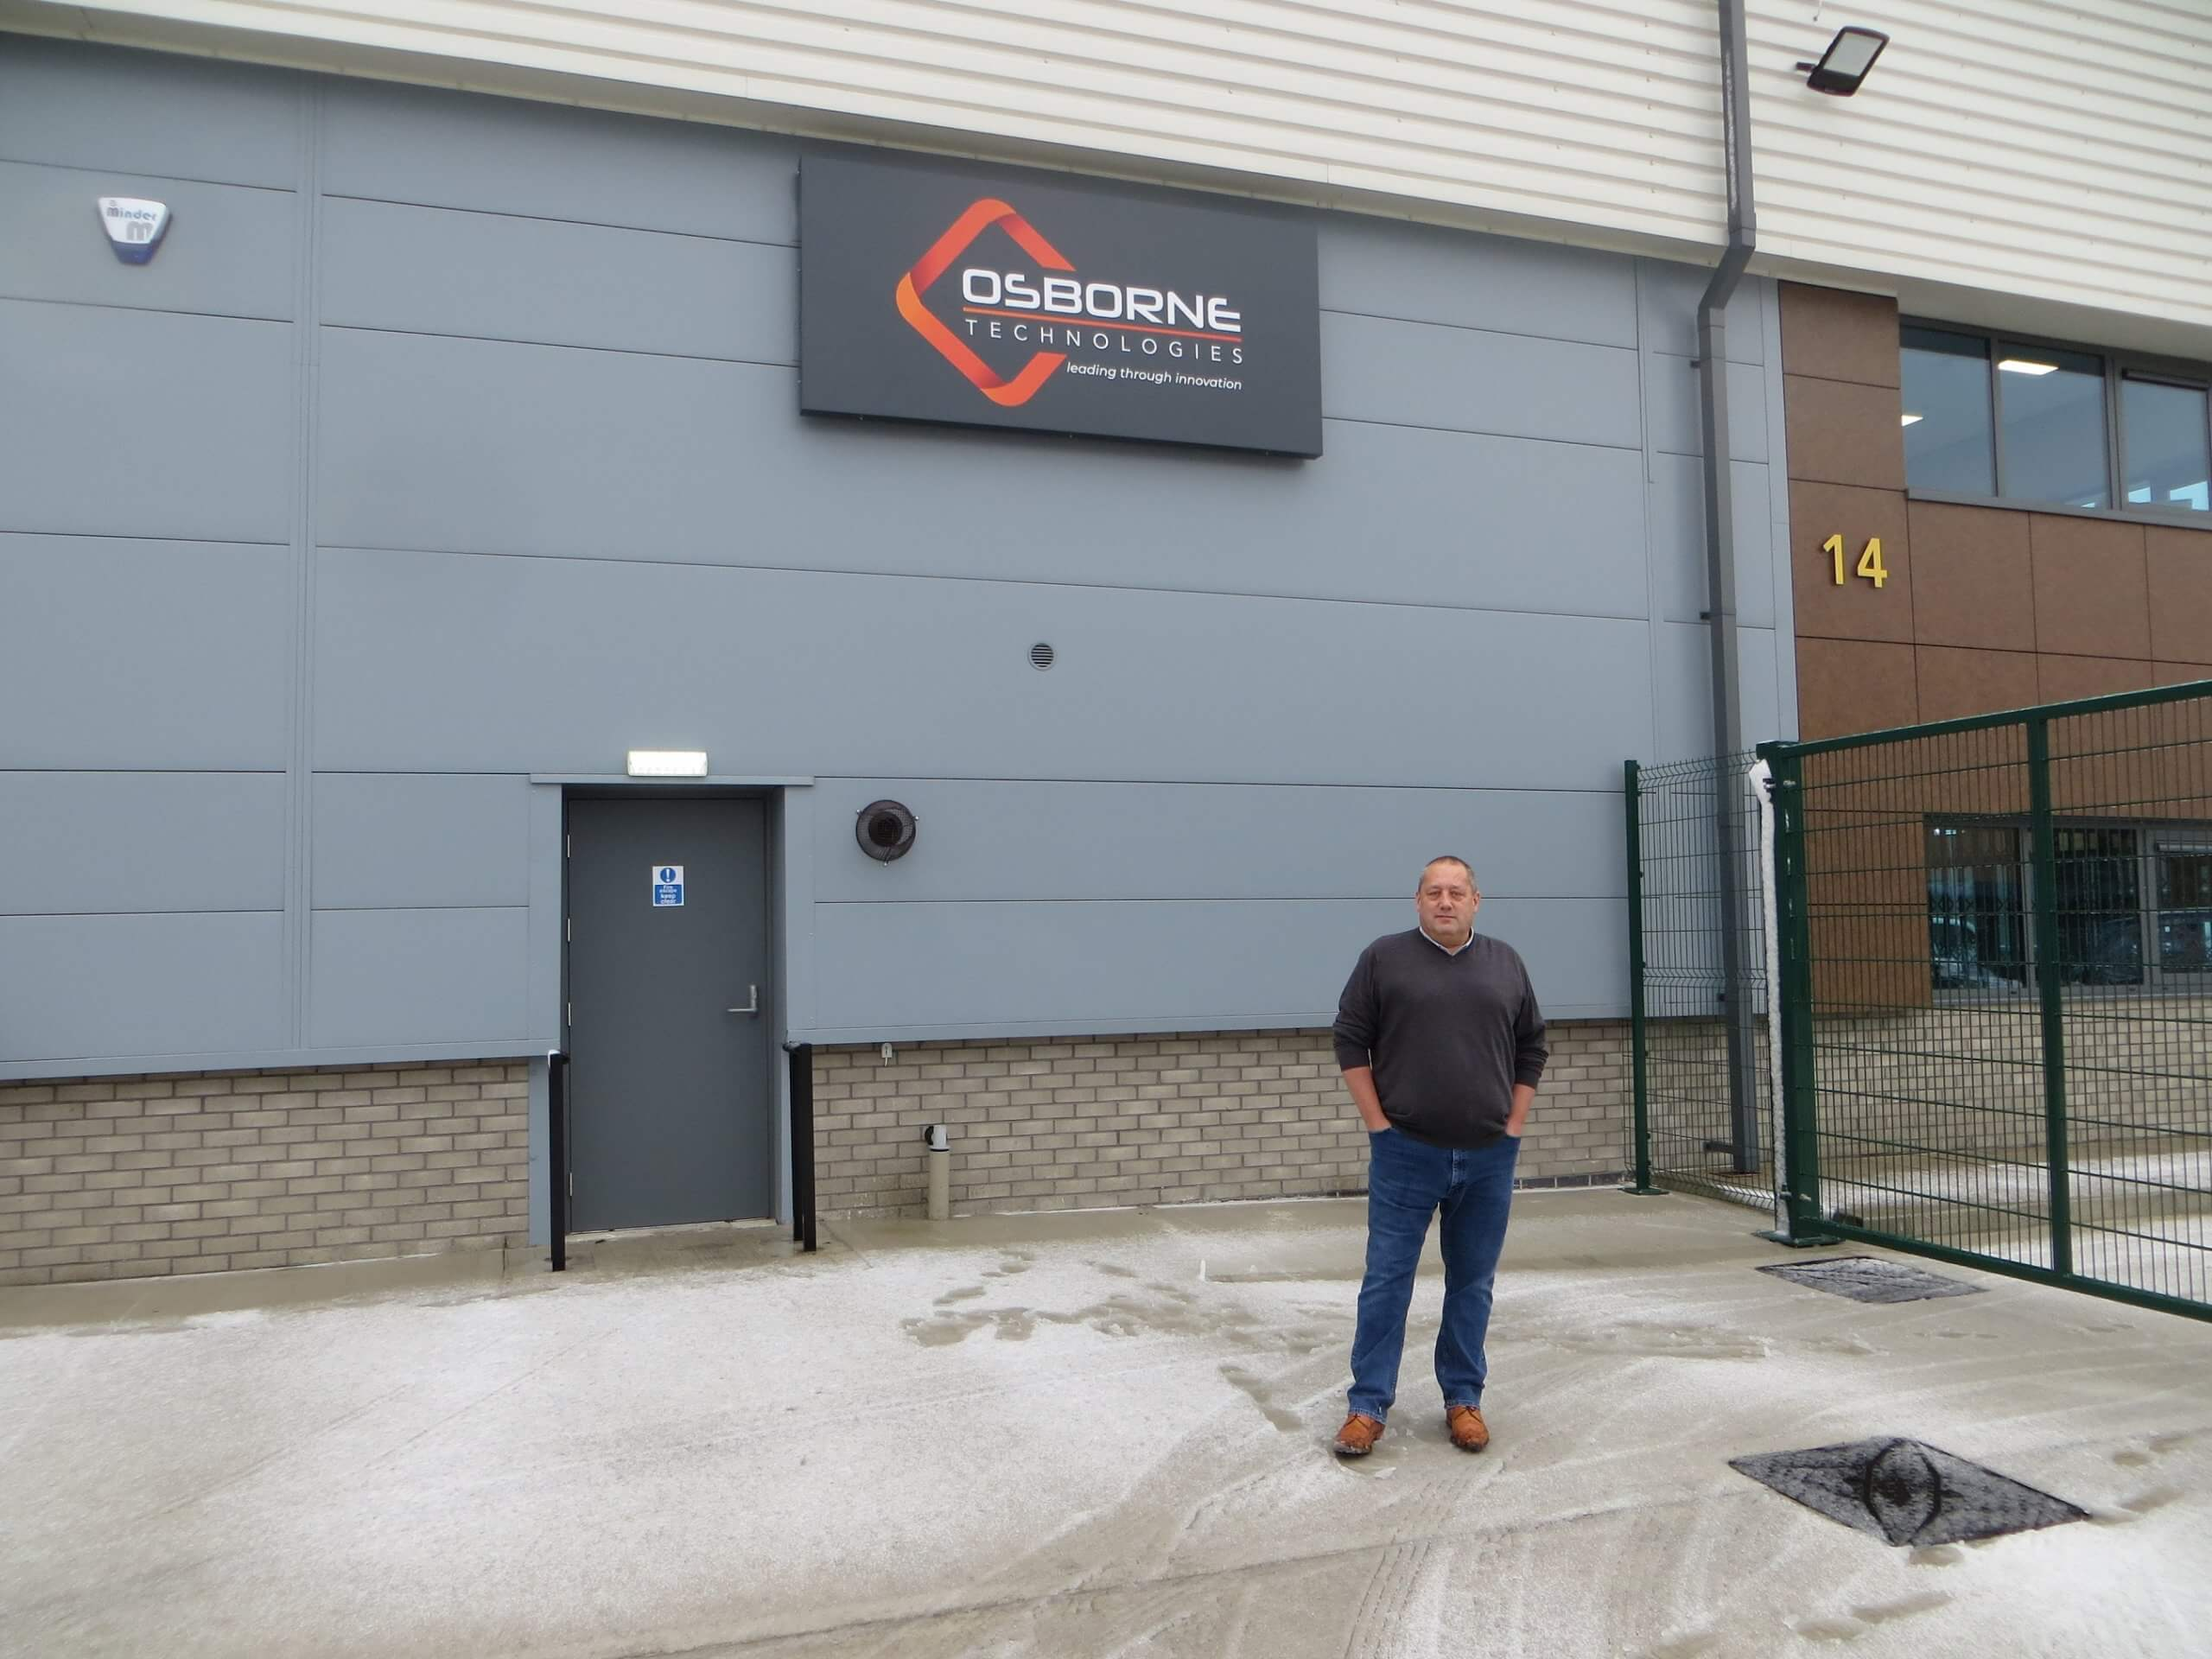 Barnsley company moves into new premises as Covid provides clear view of future